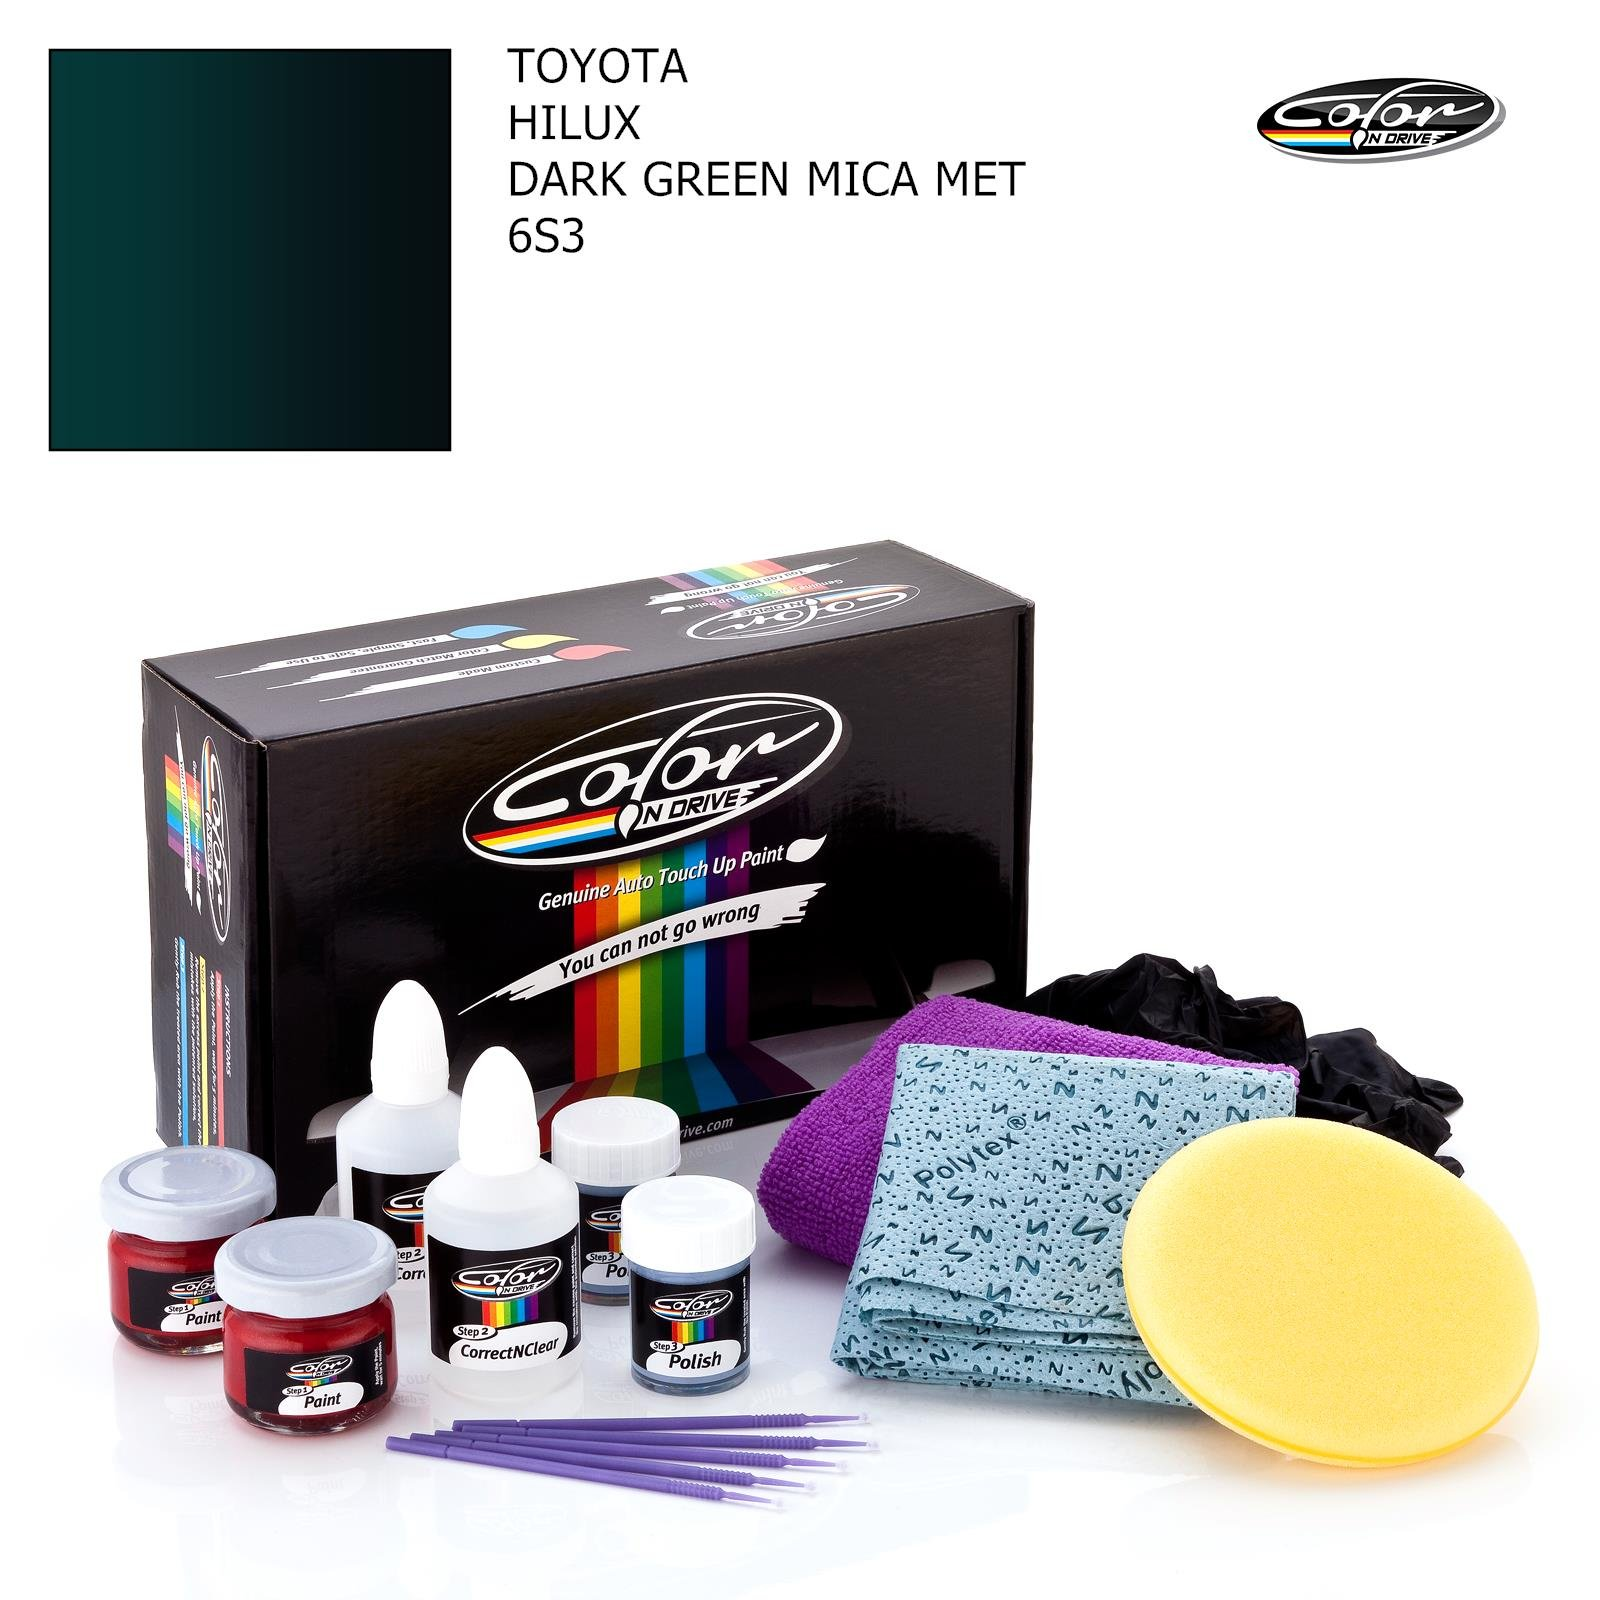 TOYOTA HILUX / DARK GREEN MICA MET - 6S3 / COLOR N DRIVE TOUCH UP PAINT SYSTEM FOR PAINT CHIPS AND SCRATCHES / PRO PACK